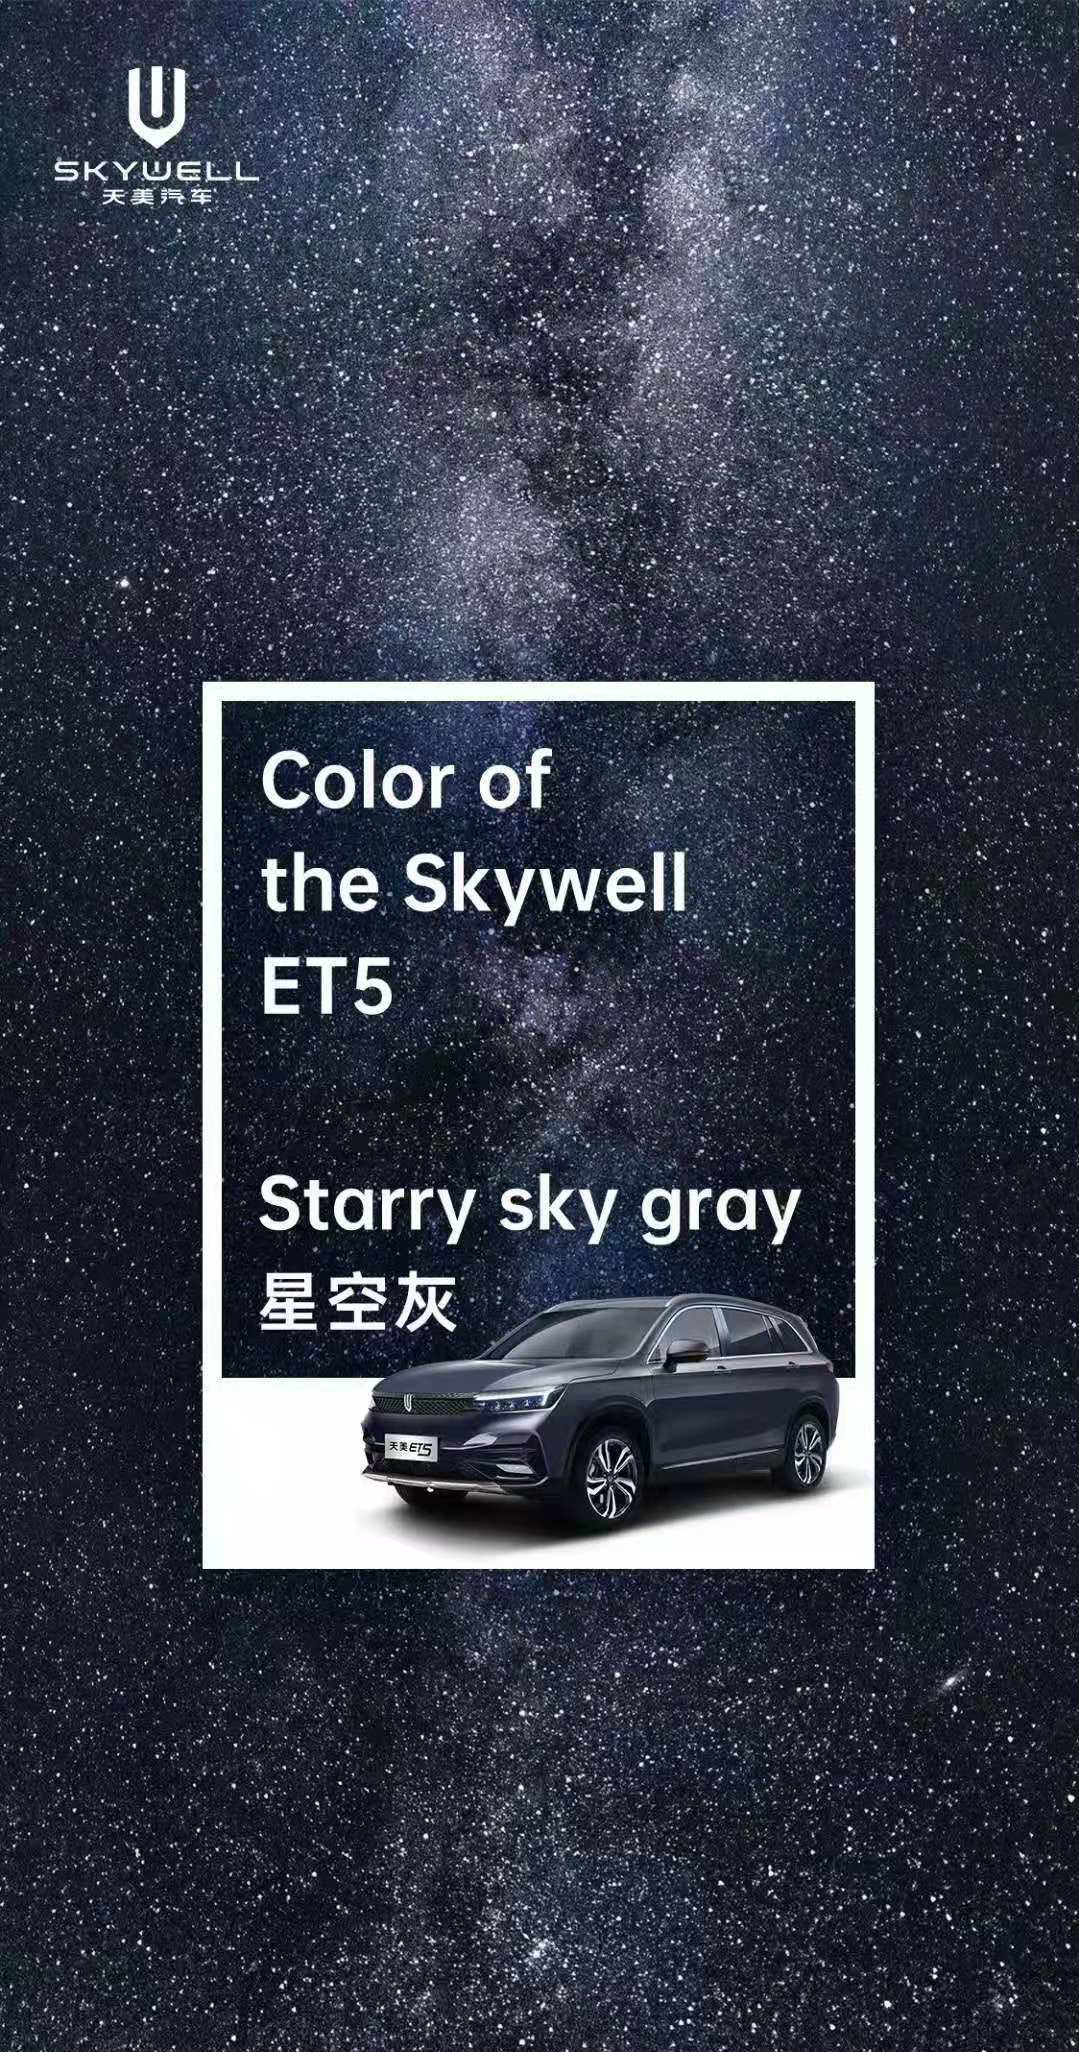 starry sky gray ET5